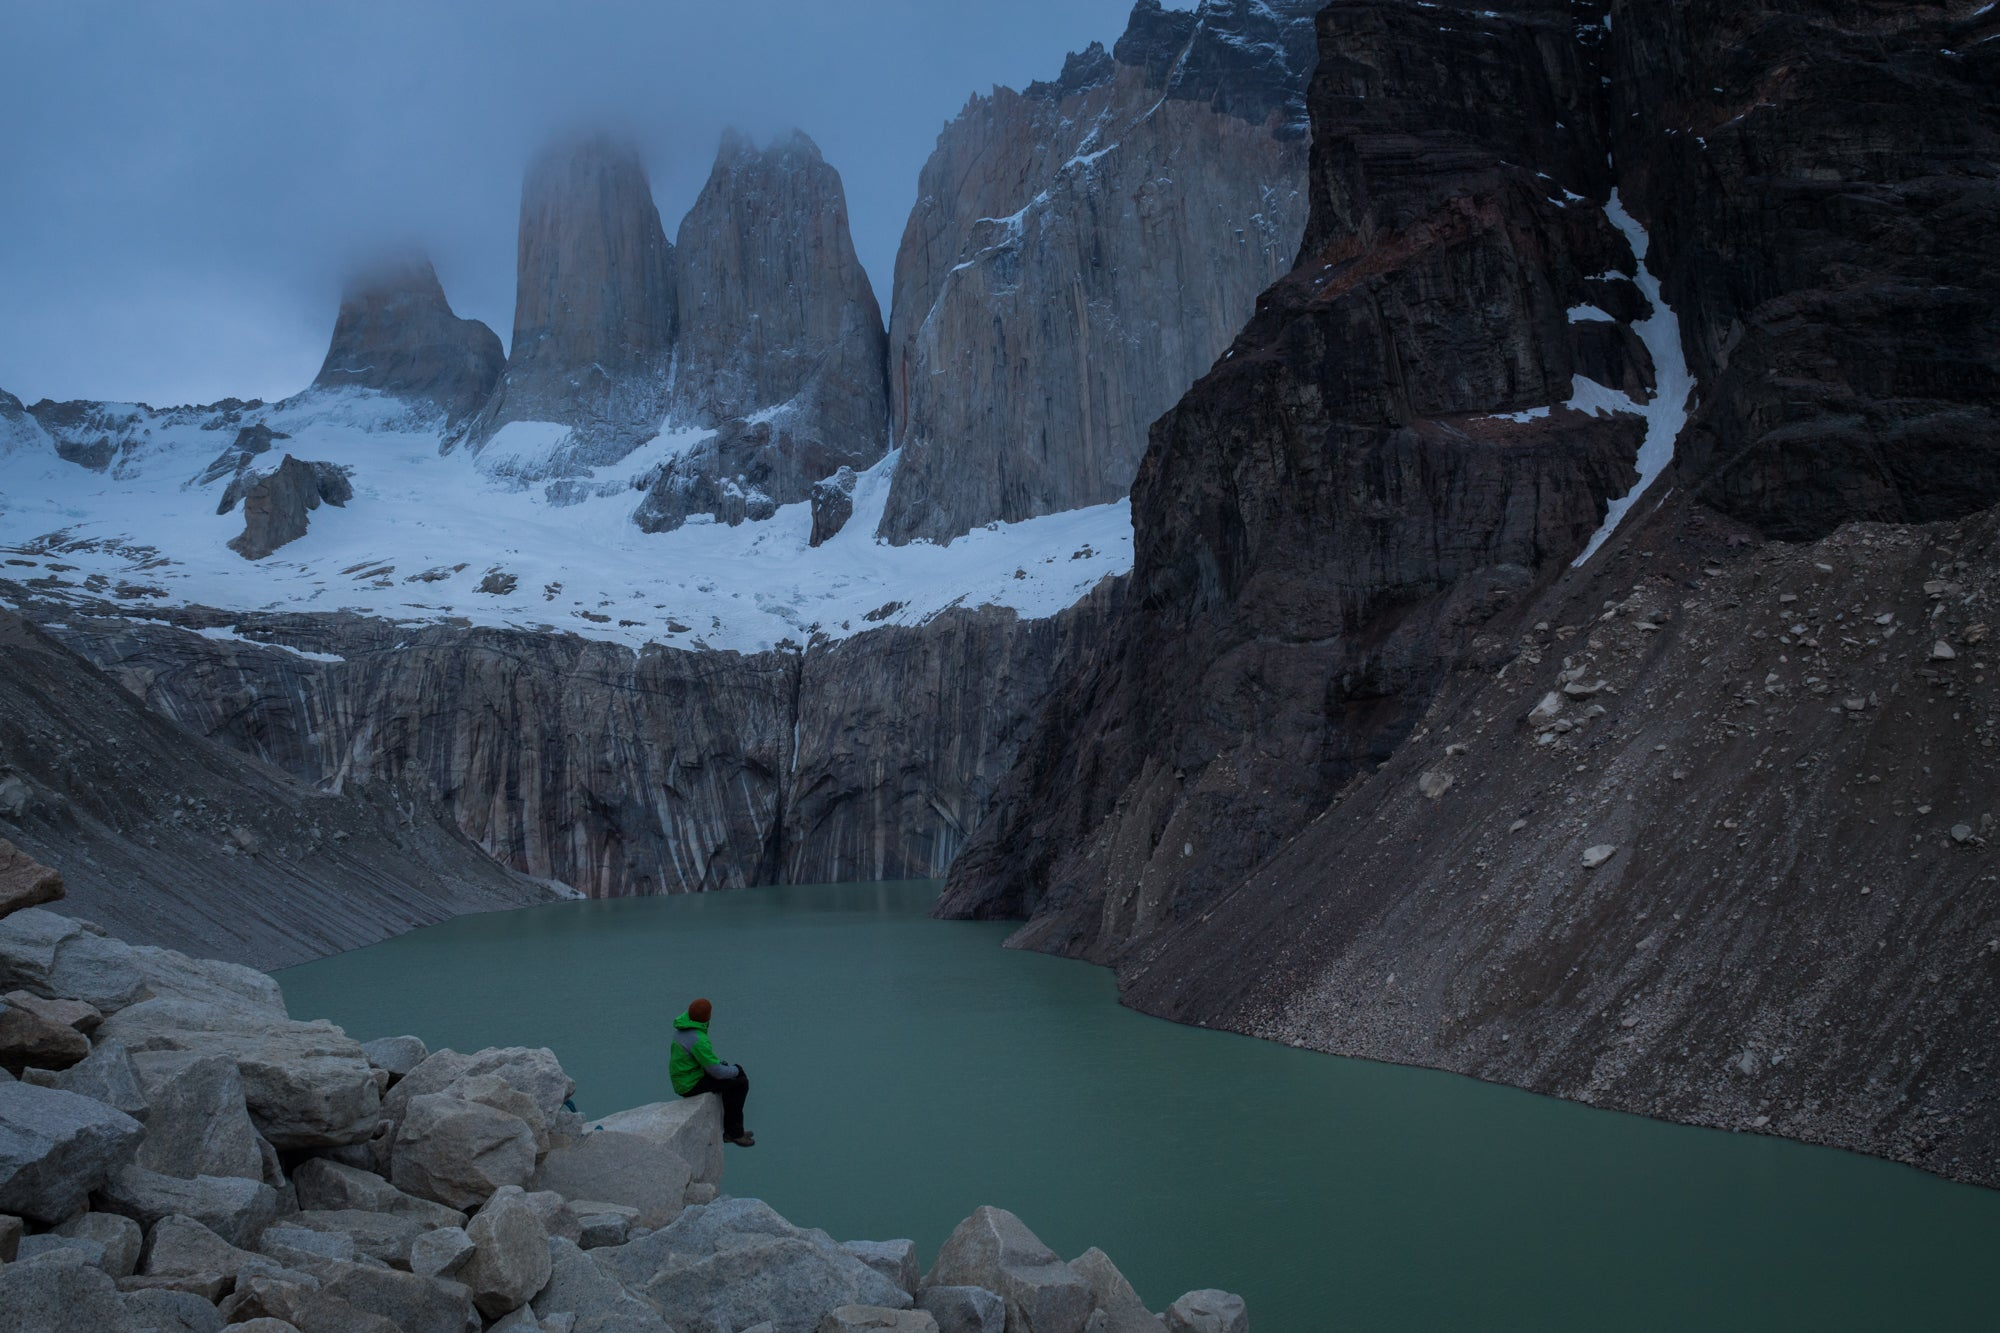 Torres del Paine limited edition landscape photography